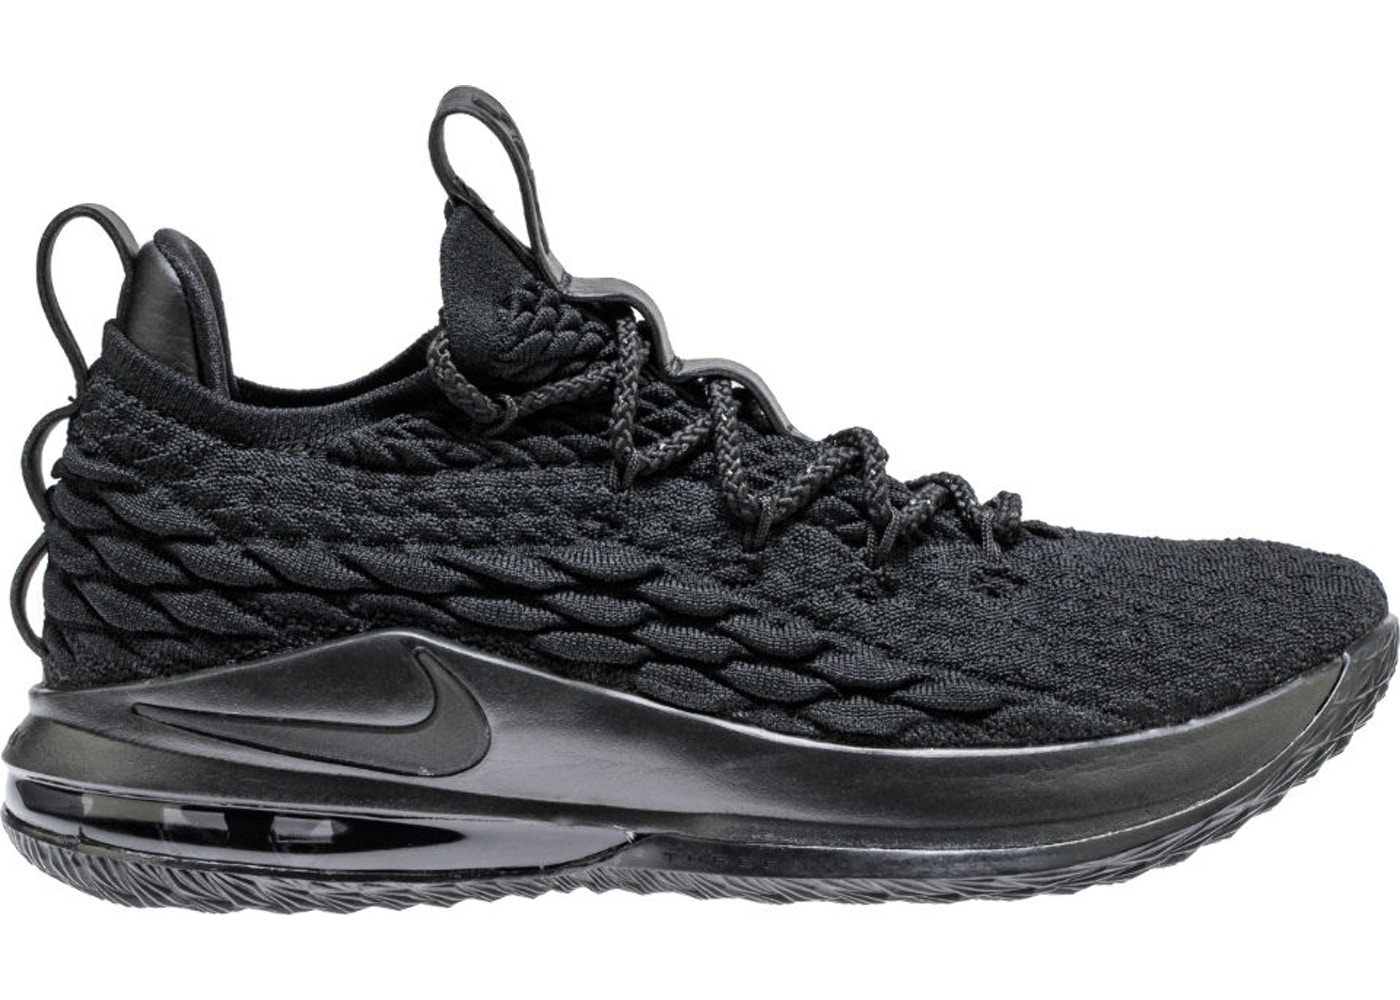 sale retailer 58a1c e487d Buy Nike LeBron 15 Shoes & Deadstock Sneakers